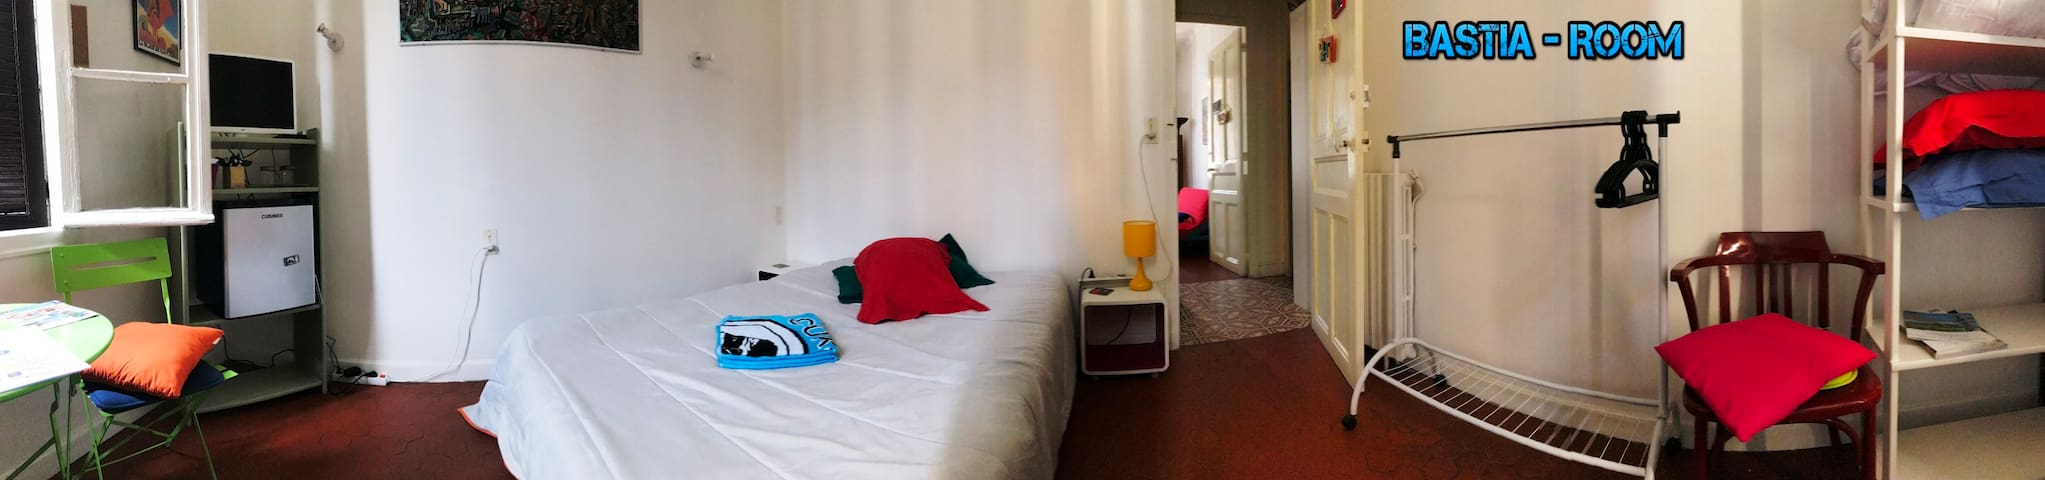 Double room , Bastia city center #3